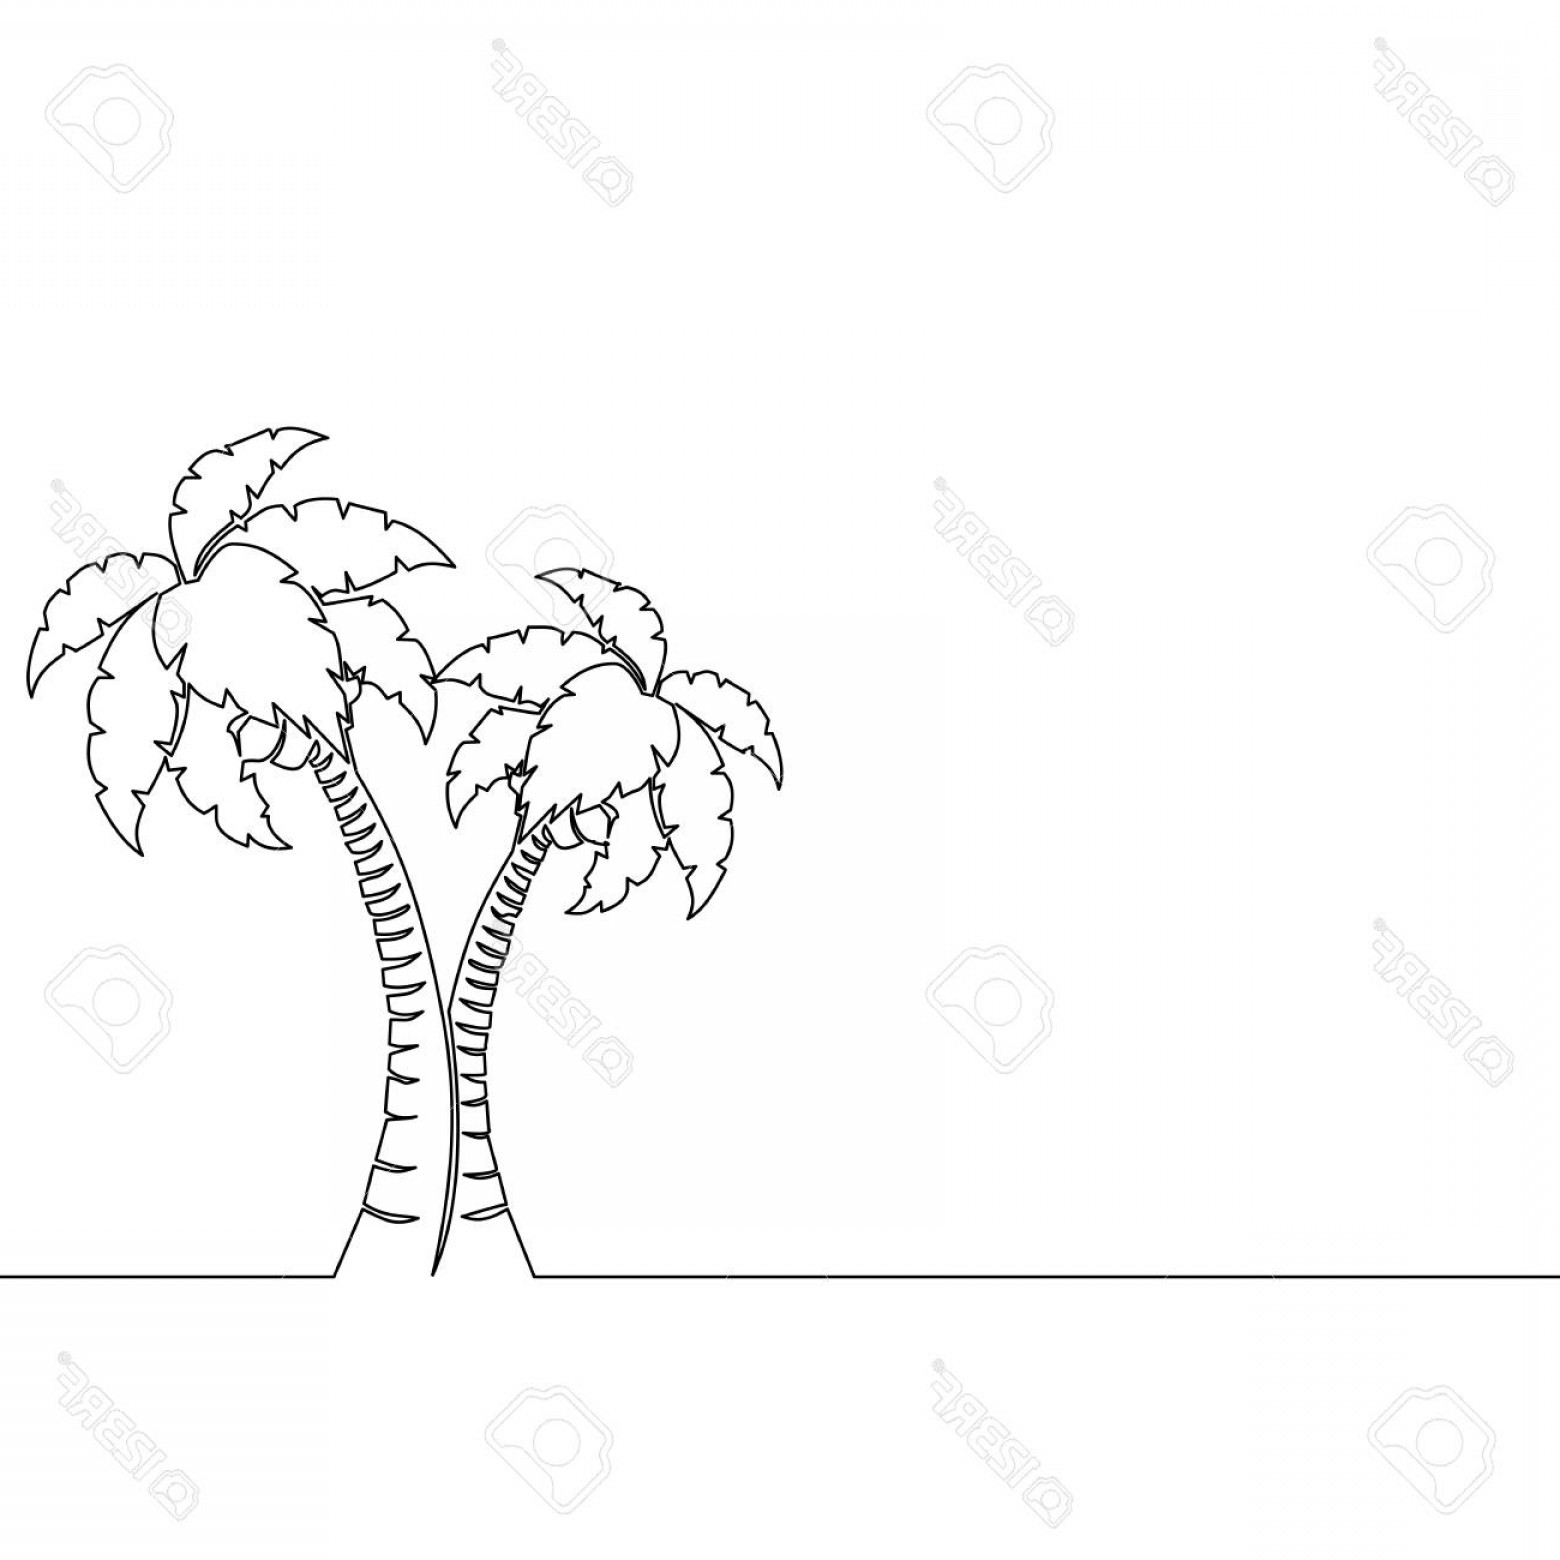 Tree Abstract Line Art And Vector: Photostock Vector Single Continuous Line Art Palm Tree Single Line Drawing Abstract Line Art Vector Illustration